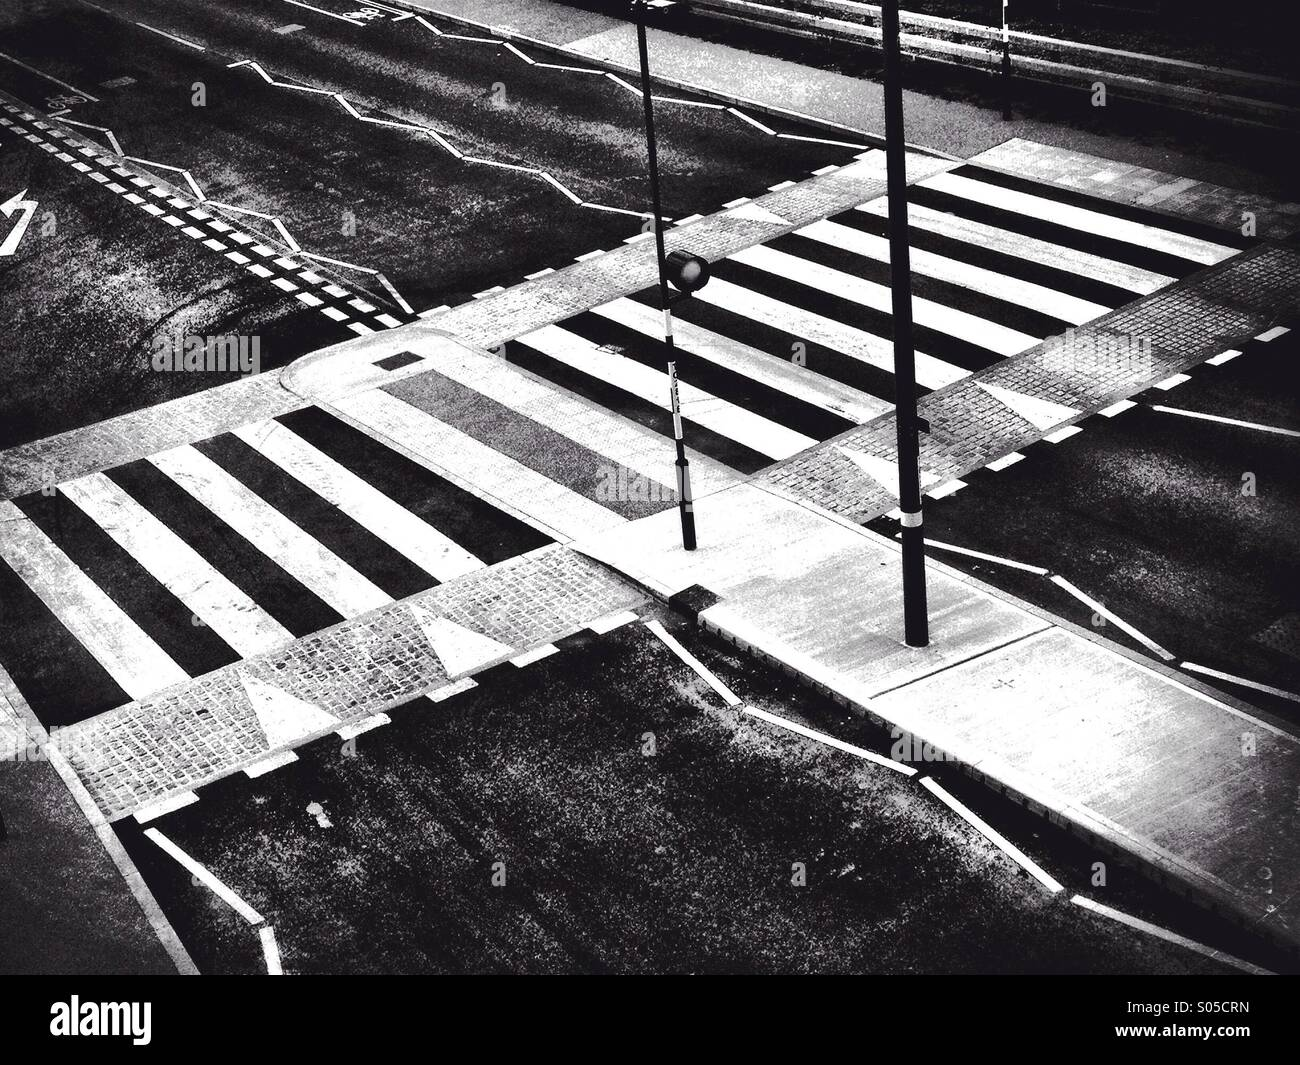 Zebra Crossing on a wide empty road. Black and white photograph. Stock Photo